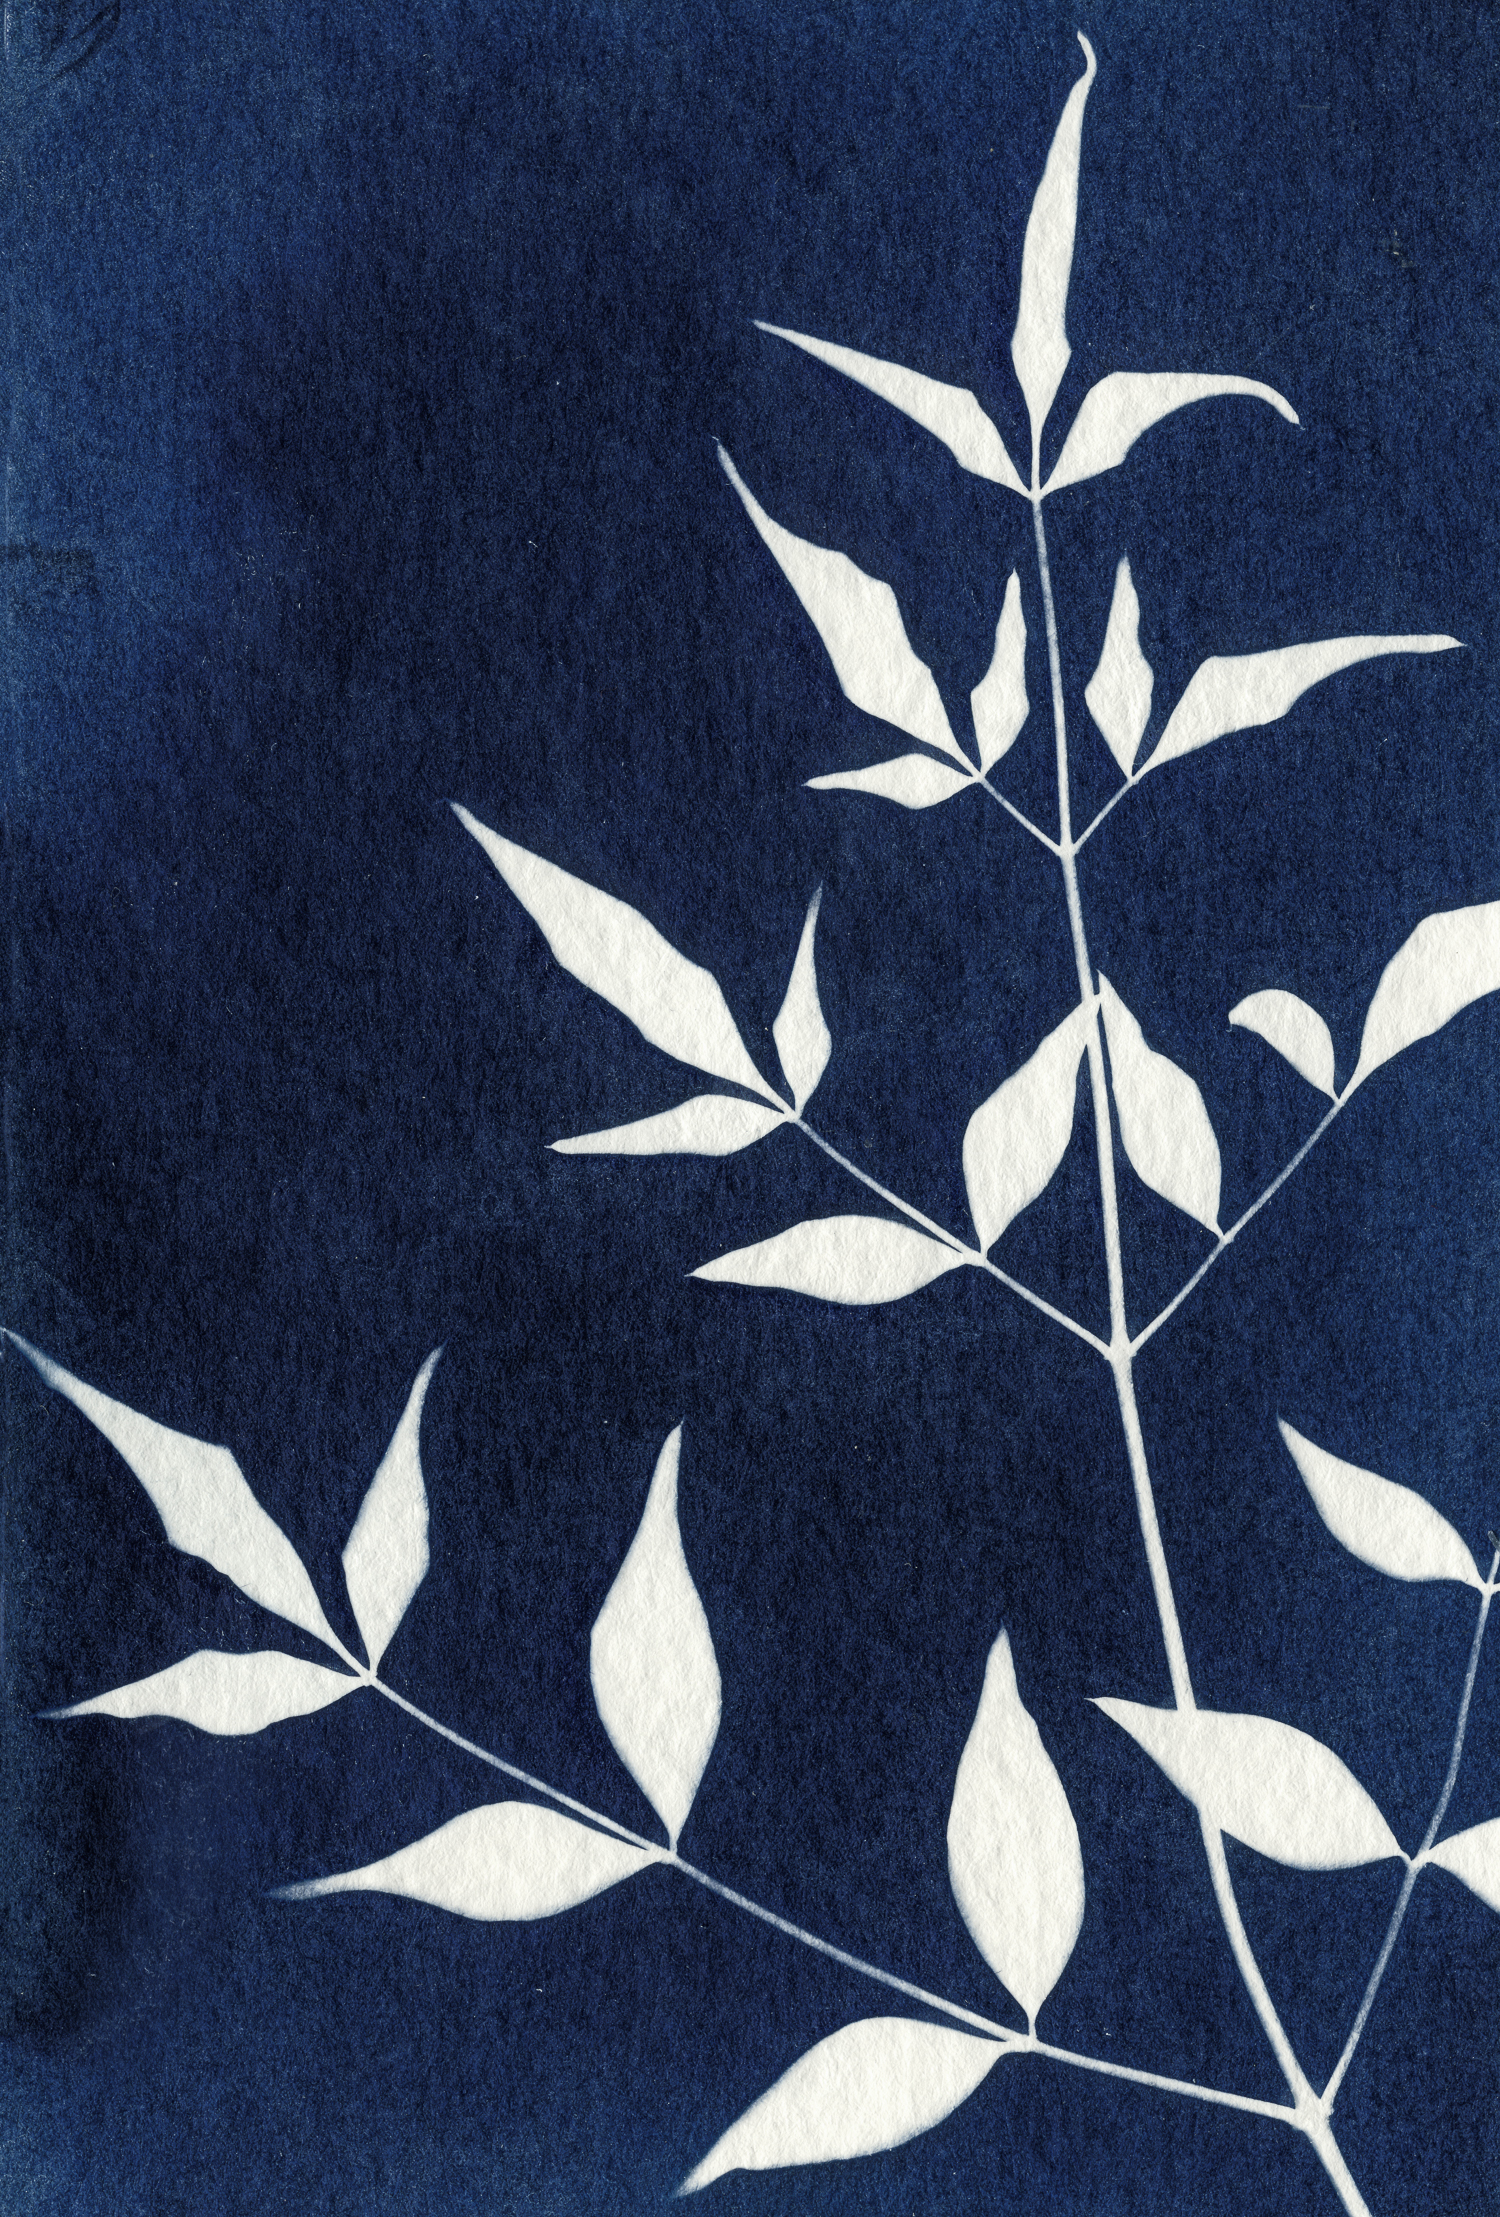 01 jan 01 2019_calendar_cyanotype 003a-edit.jpg